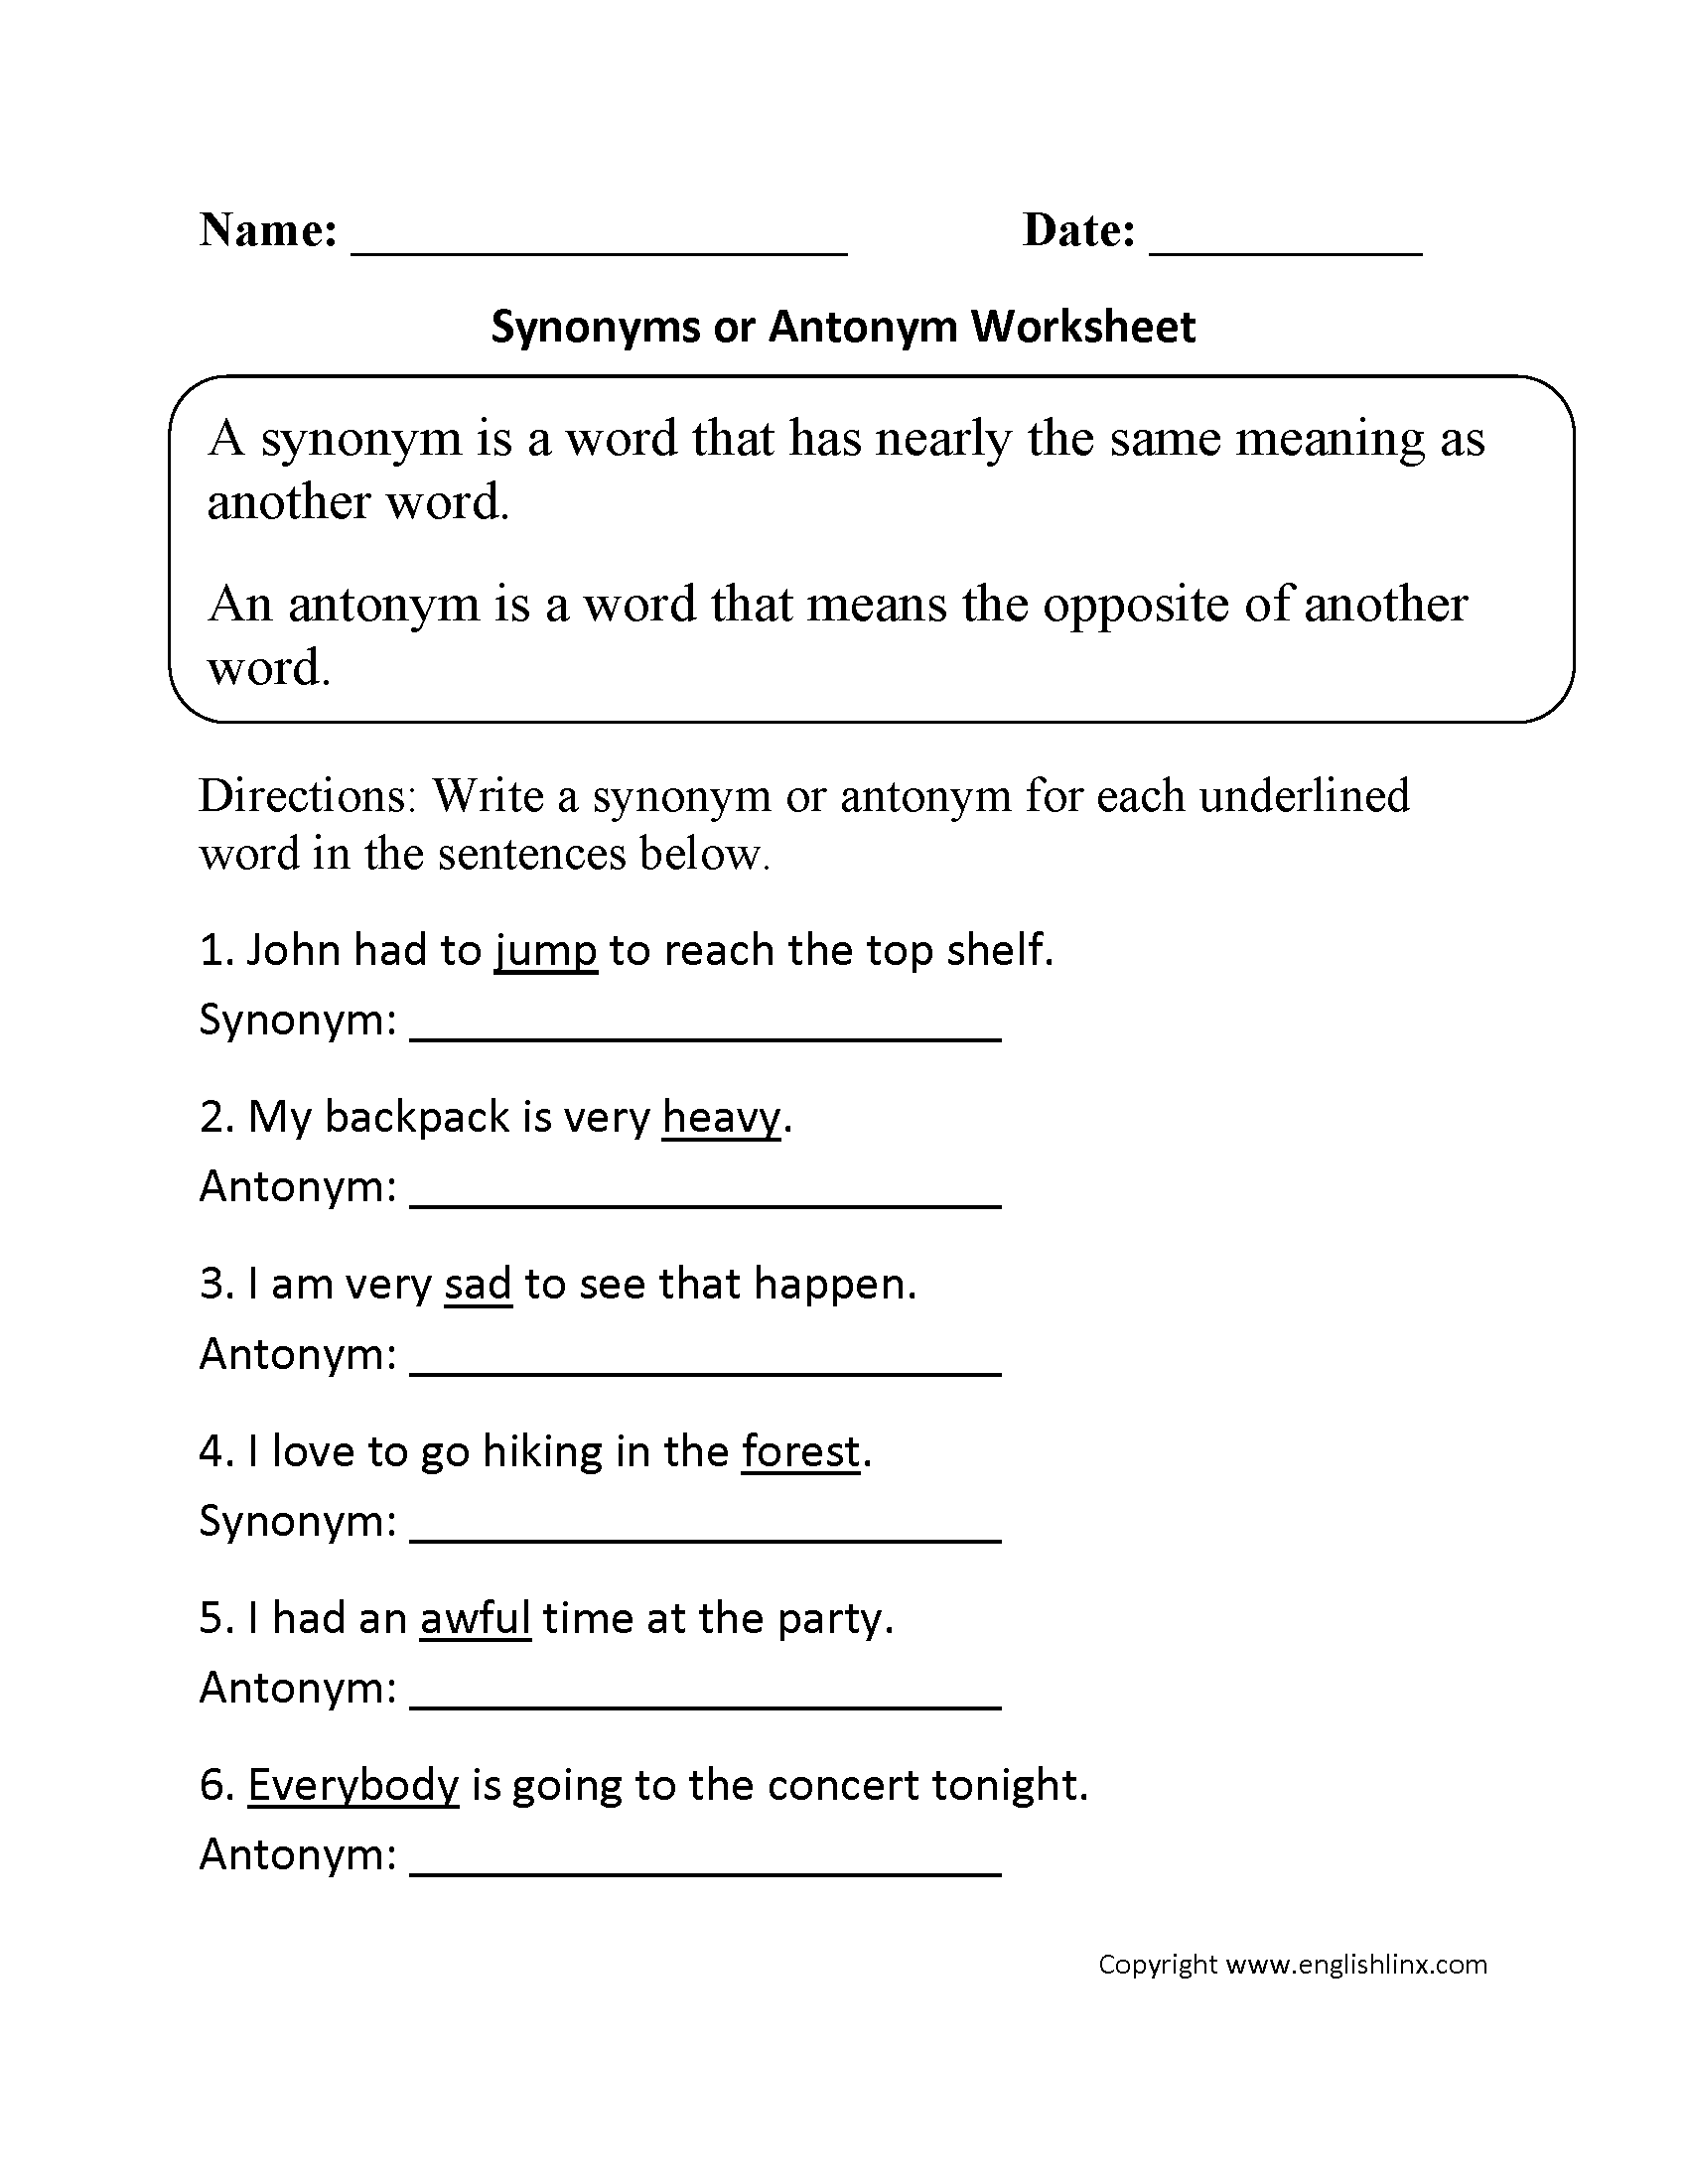 Synonym or Antonym Worksheet